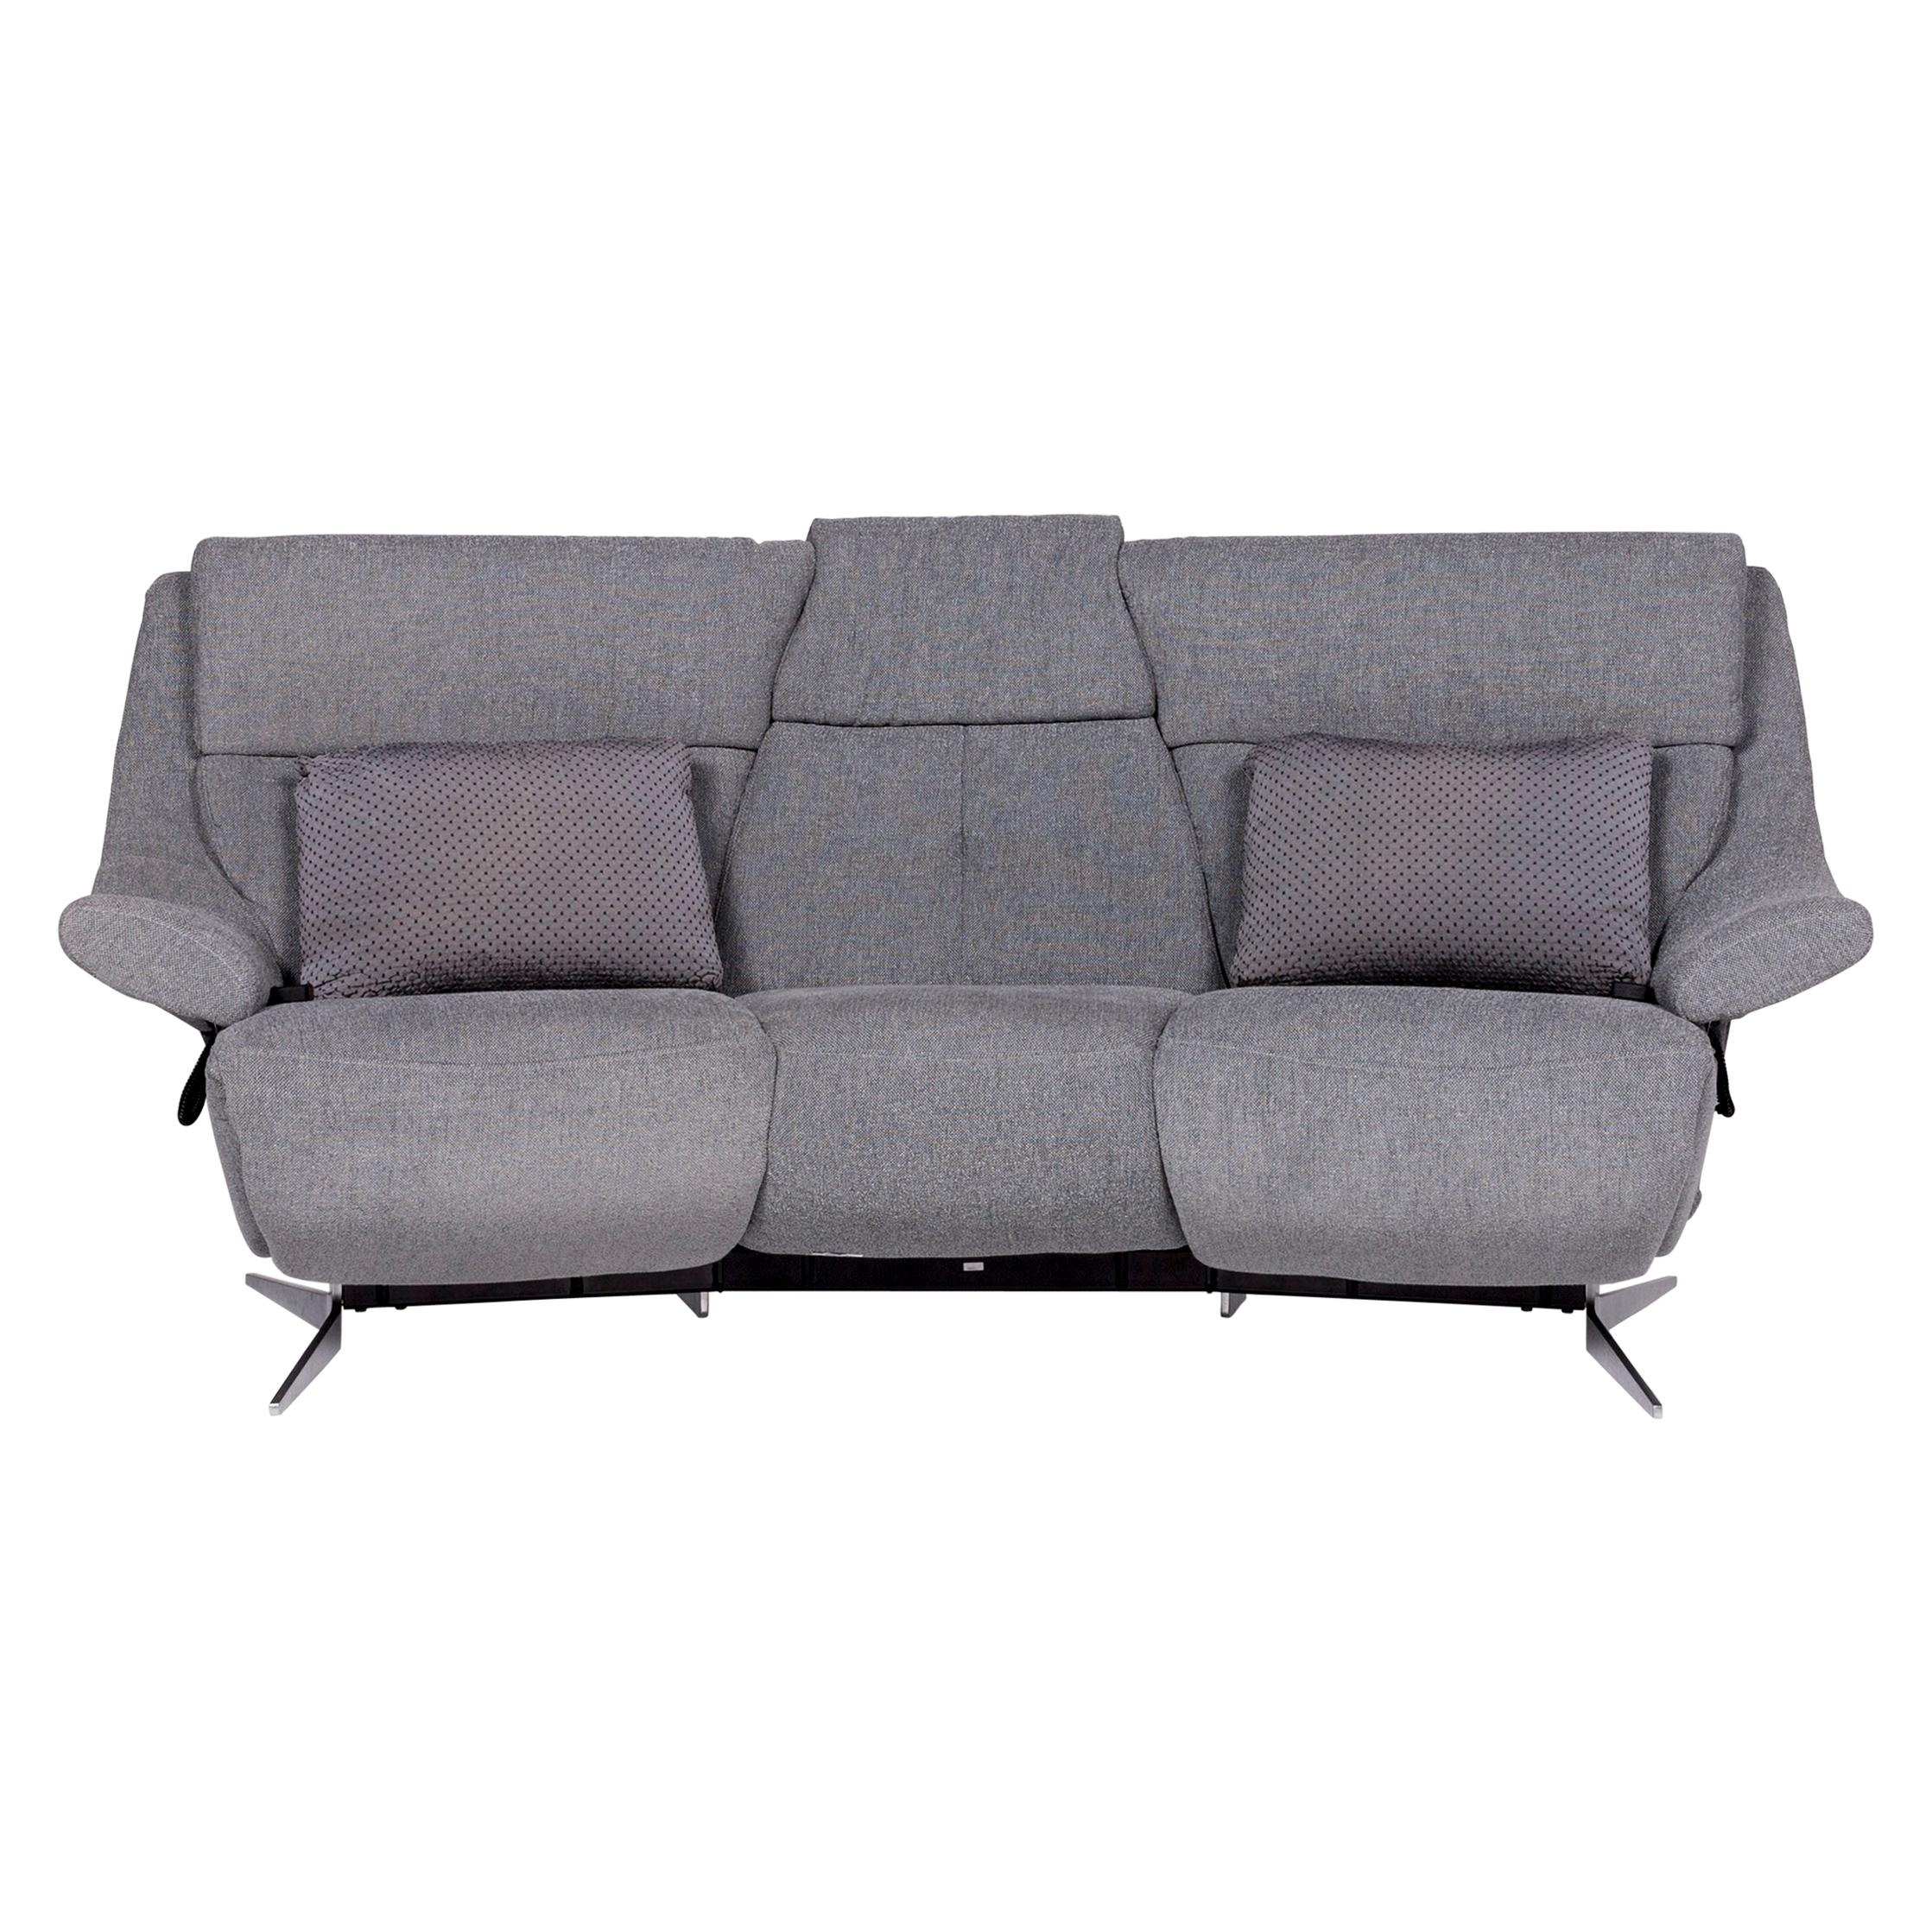 Ecksofa Elektrische Funktion Brühl Sippold Moule Stoff Sofa Grau Zweisitzer Relaxfunktion Funktion Couch